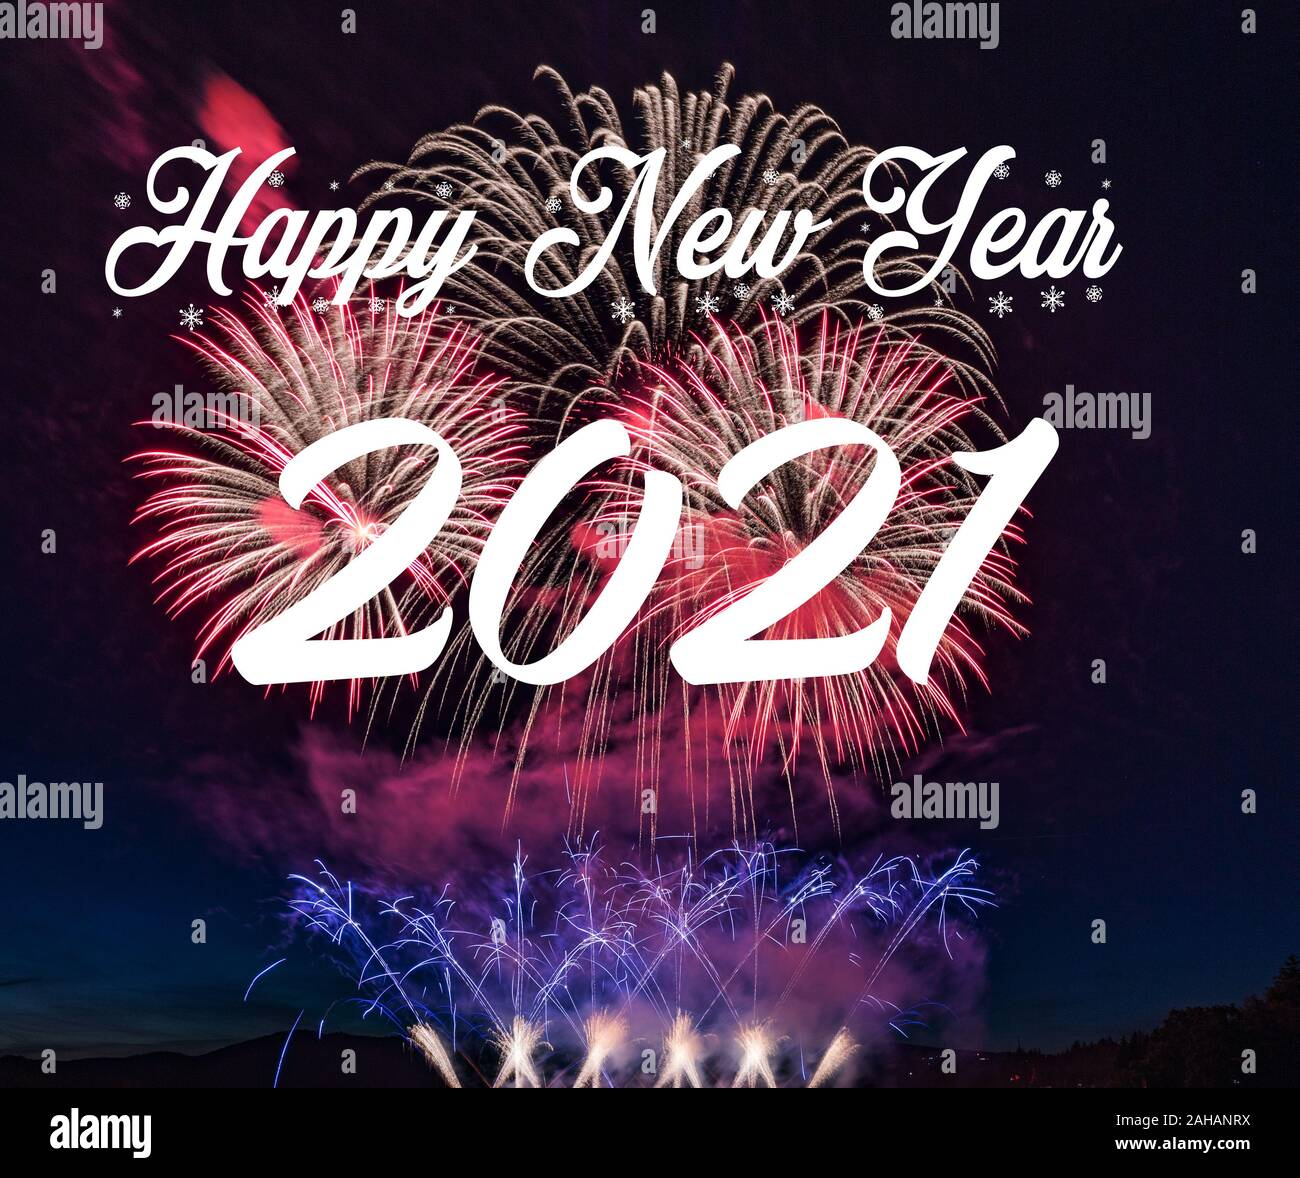 Happy new year 2021 with fireworks background. Celebration New Year 2021 Stock Photo - Alamy